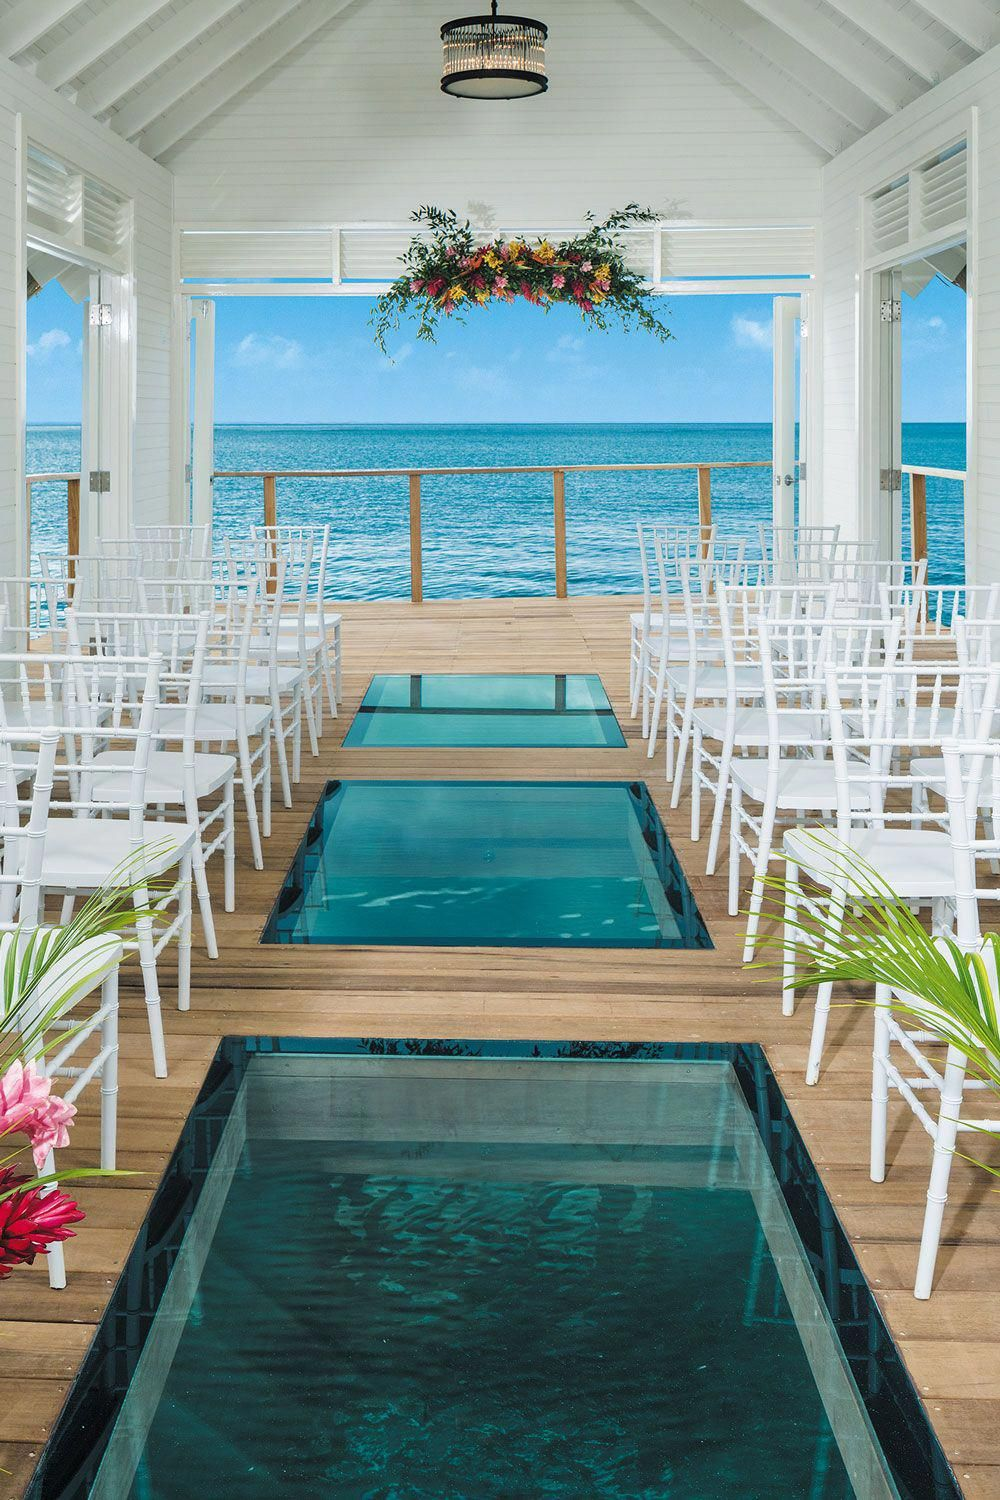 You Can Now Marry in This Amazing Over-Water Chapel in the Caribbean